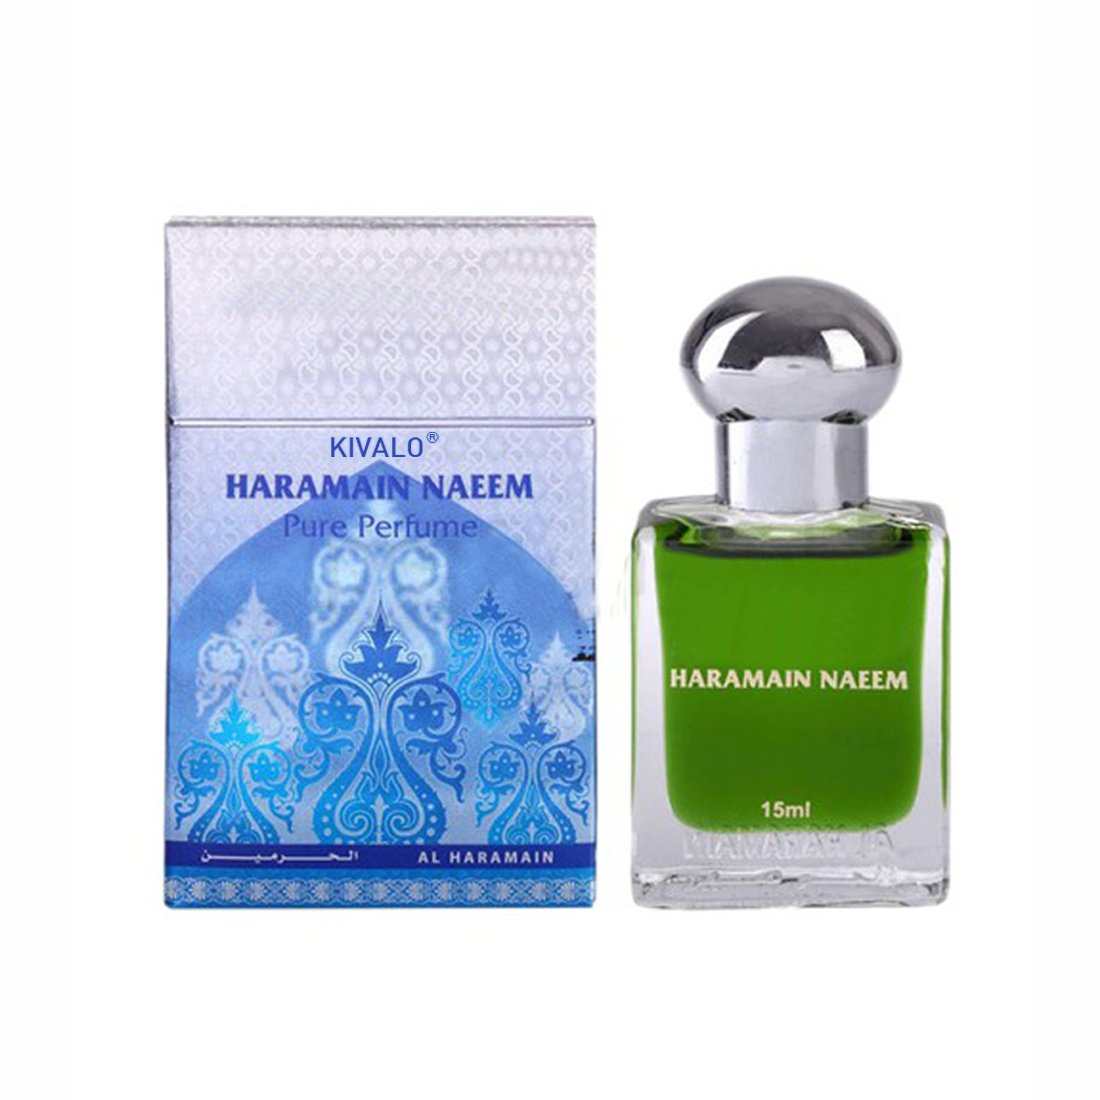 Al Haramain Naeem & Mukhallath Fragrance Pure Original Roll on Perfume Oil Pack of 2 (Attar) - 2 x 15 ml